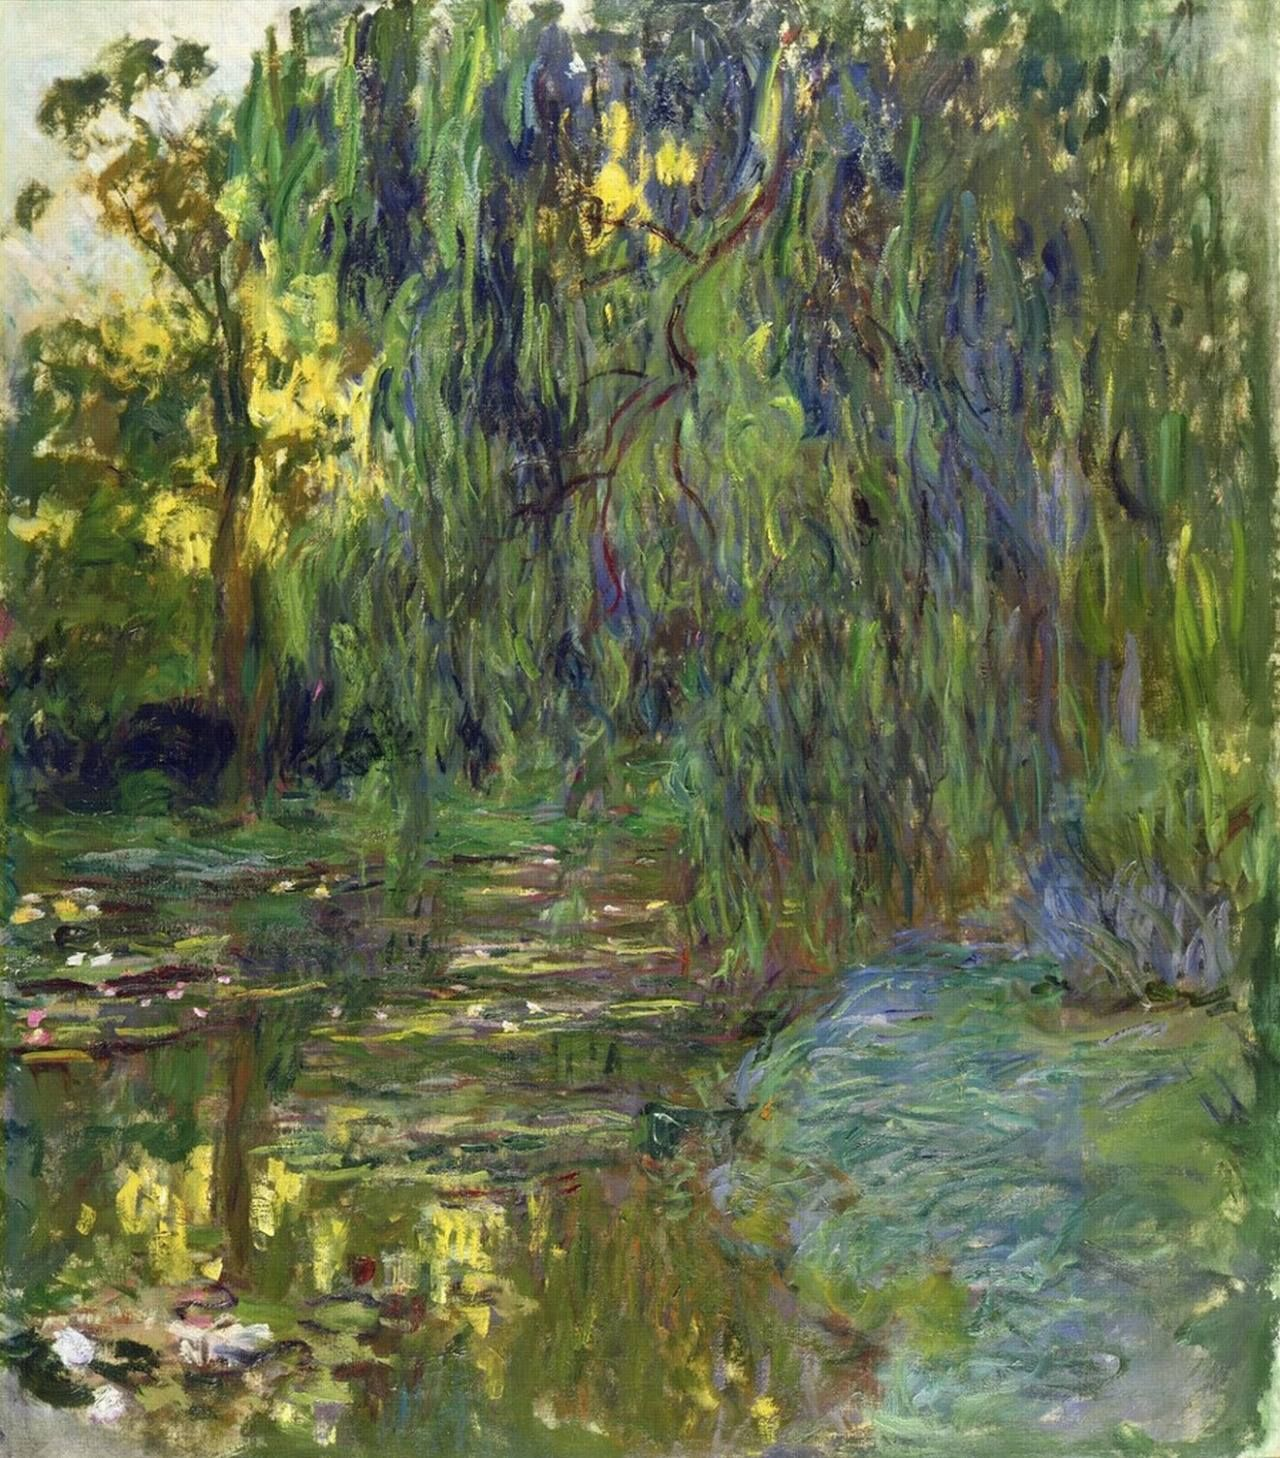 Weeping Willow and Waterlily Pond, Claude monet, s.d. | Claude monet, Monet  oil paintings, Monet water lilies